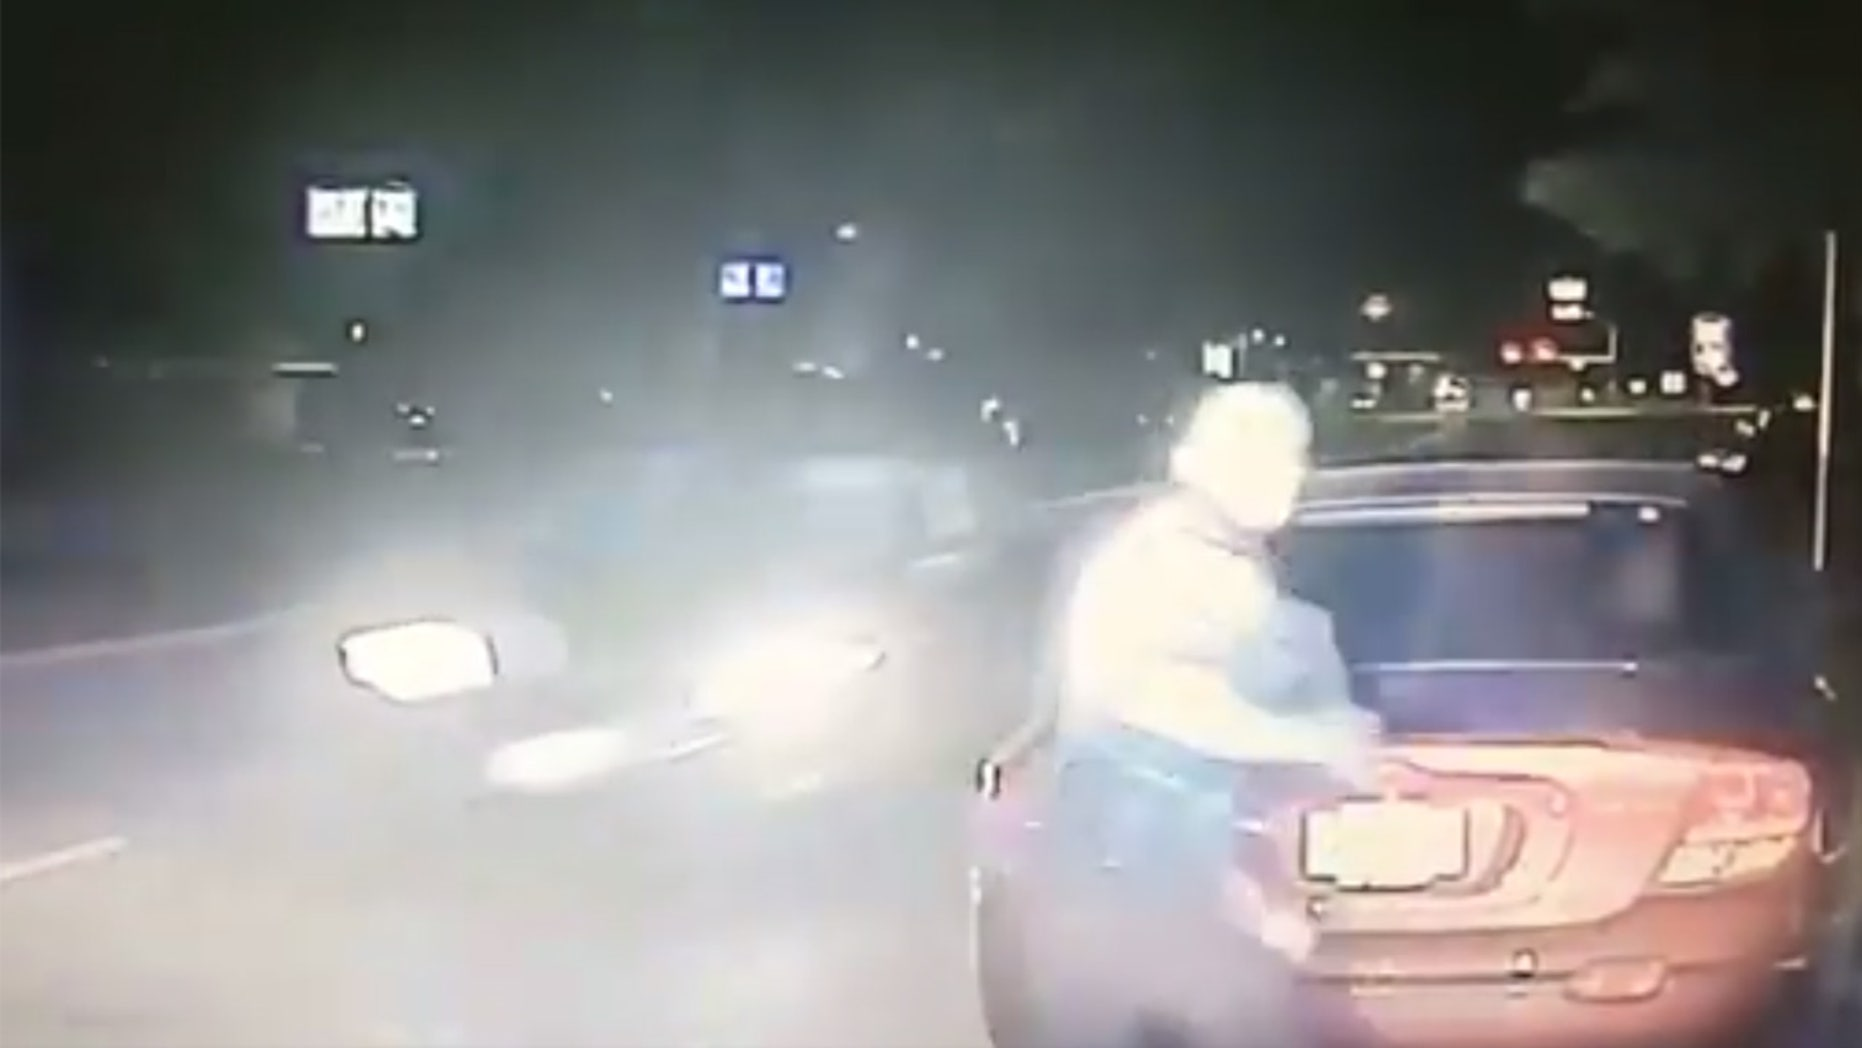 A police officer in Bridgeport, Texas narrowly missed getting hit by a drunk driver.